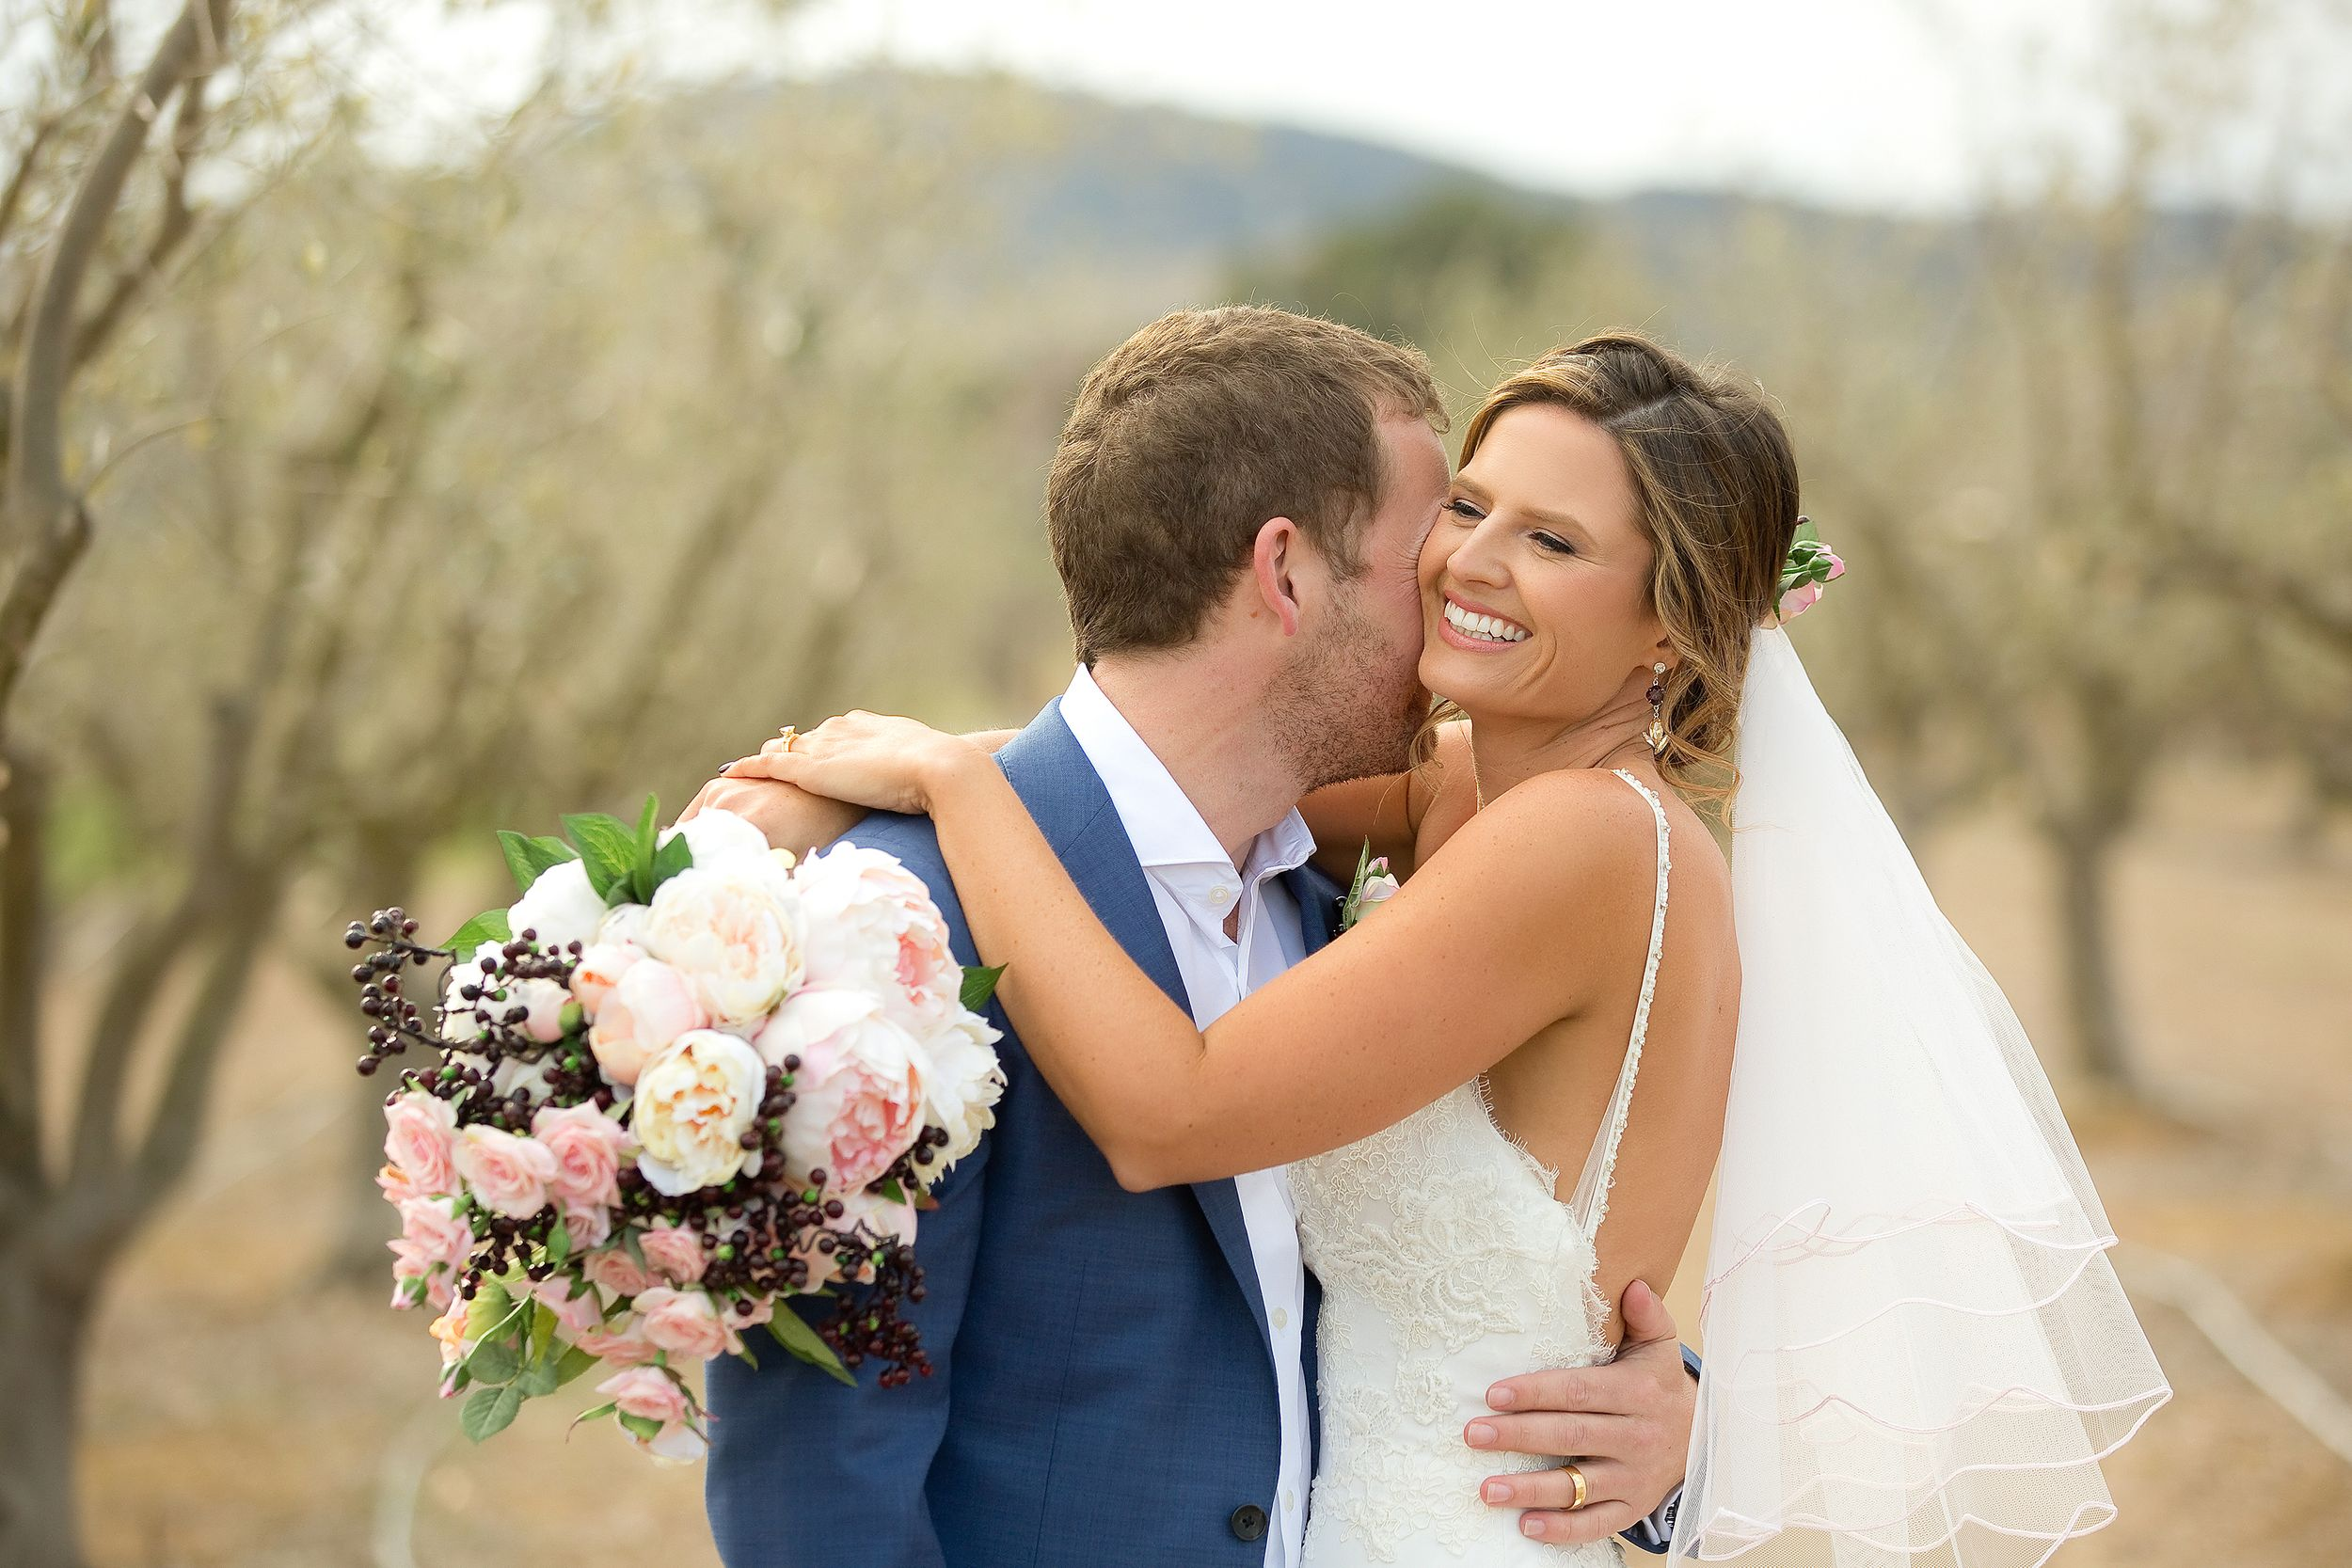 Groom kissing bride on the cheek in the olive grove at Pialligo Estate wedding in Canberra